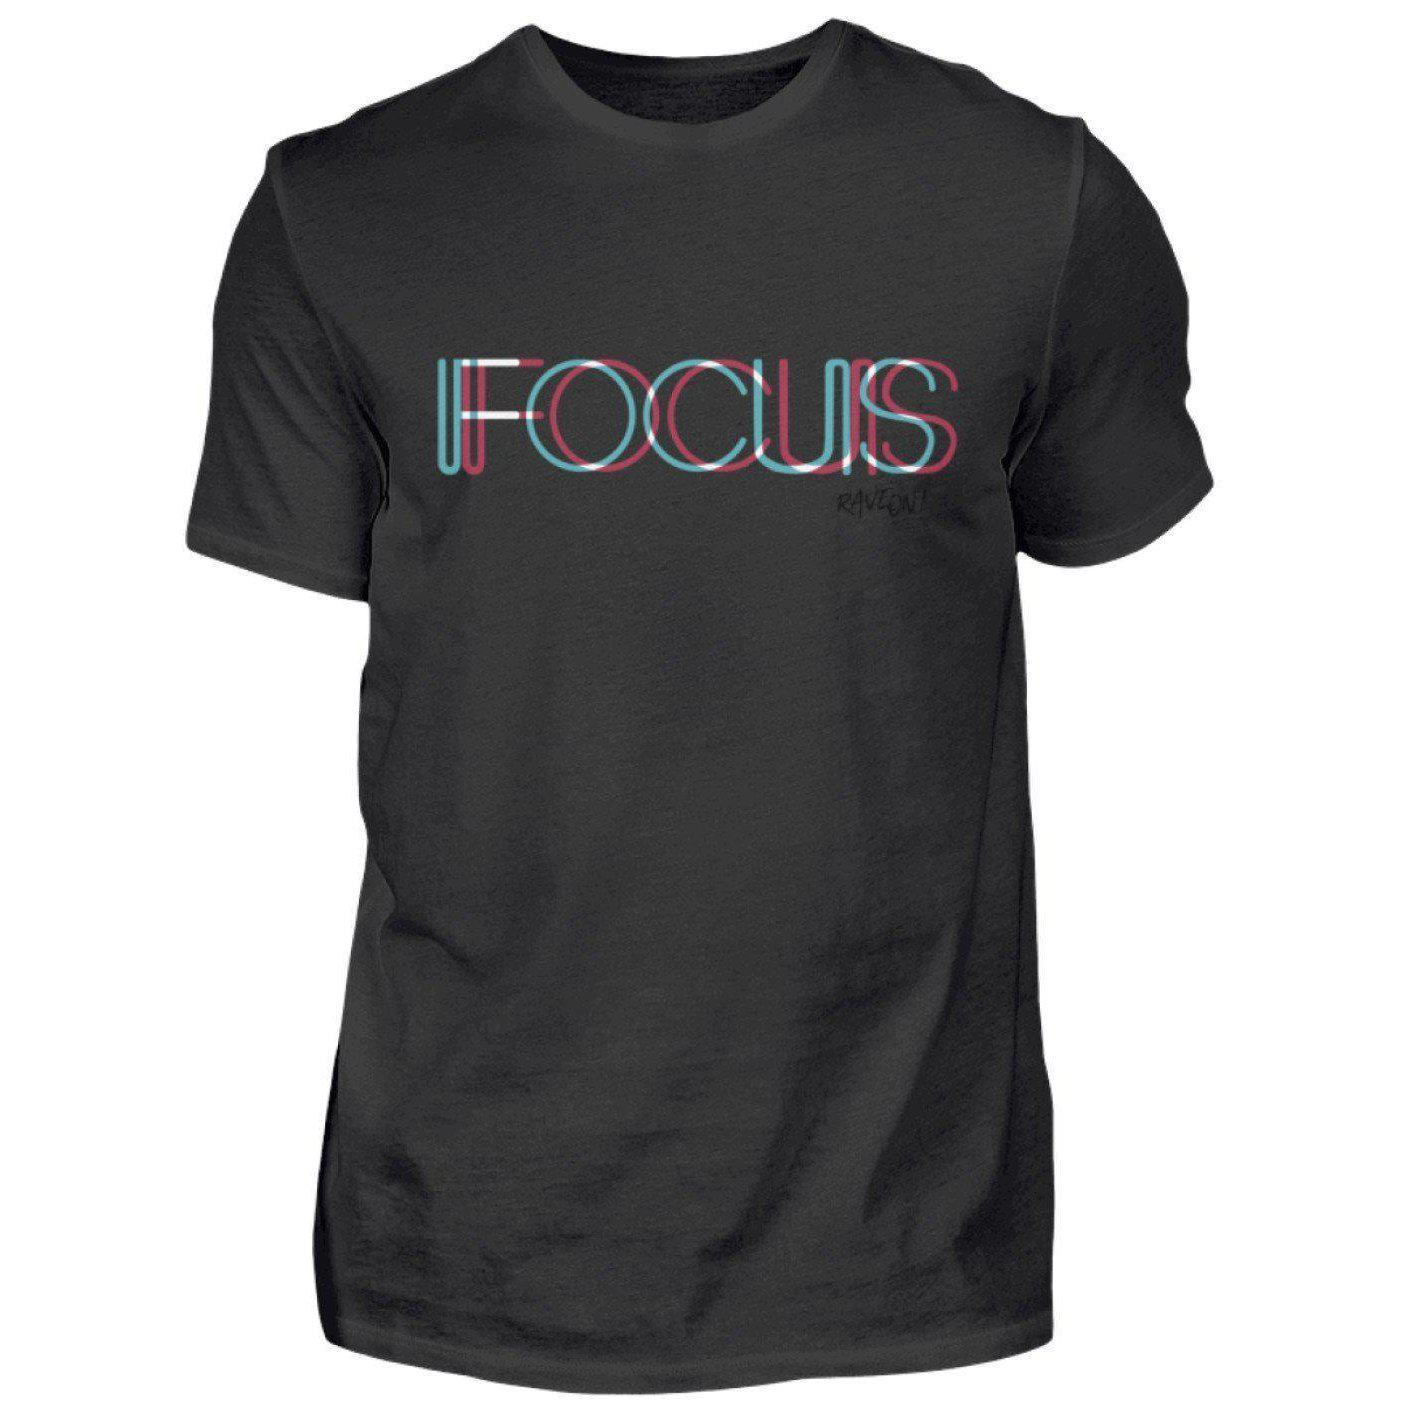 FOCUS trippy -Rave On!® - Herren Shirt Herren Basic T-Shirt Schwarz / S - Rave On!® der Club & Techno Szene Shop für Coole Junge Mode Streetwear Style & Fashion Outfits + Sexy Festival 420 Stuff